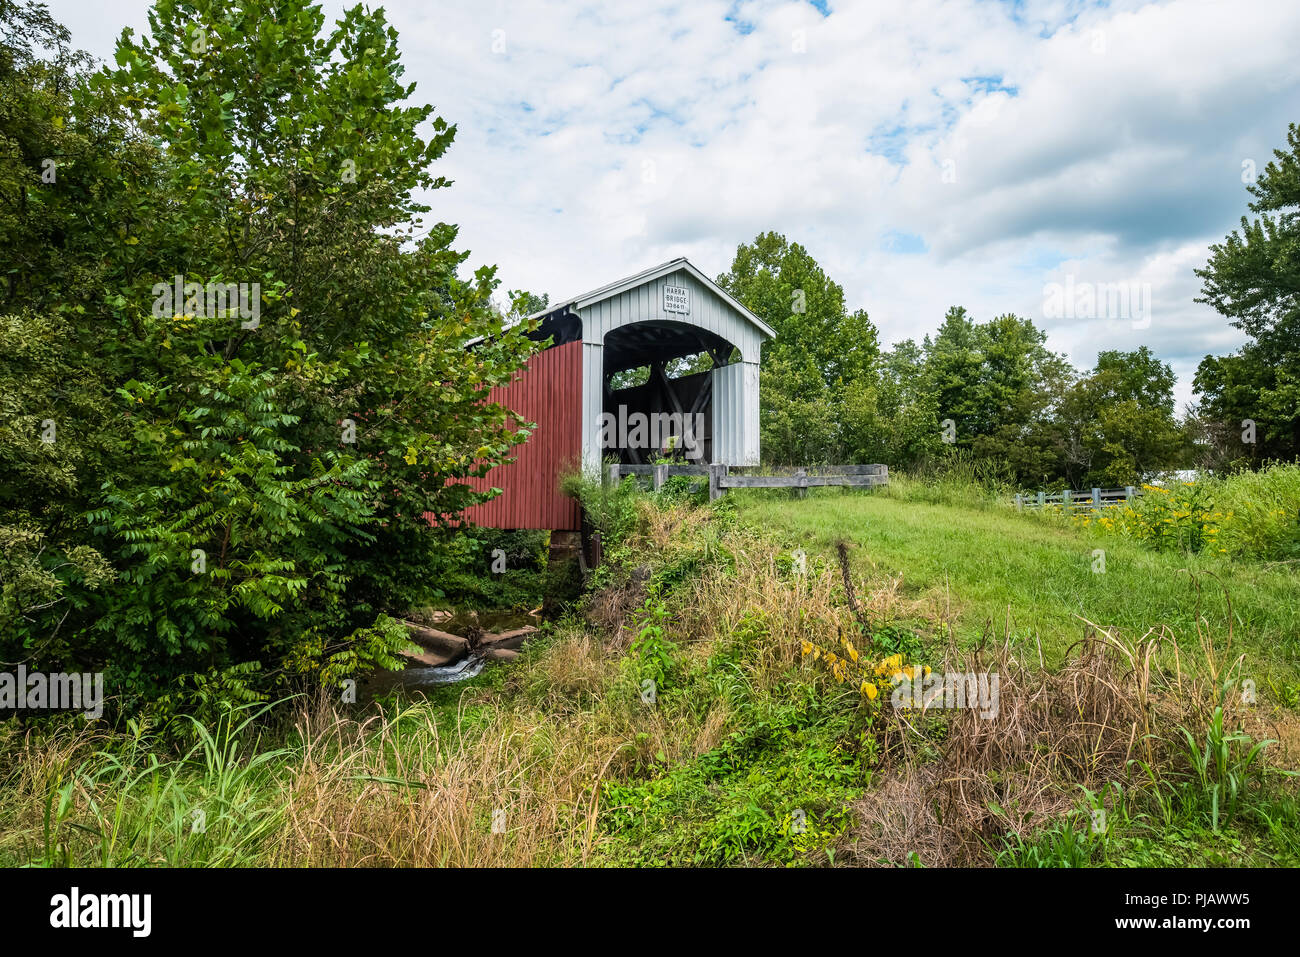 Harra Covered Bridge Stock Photo